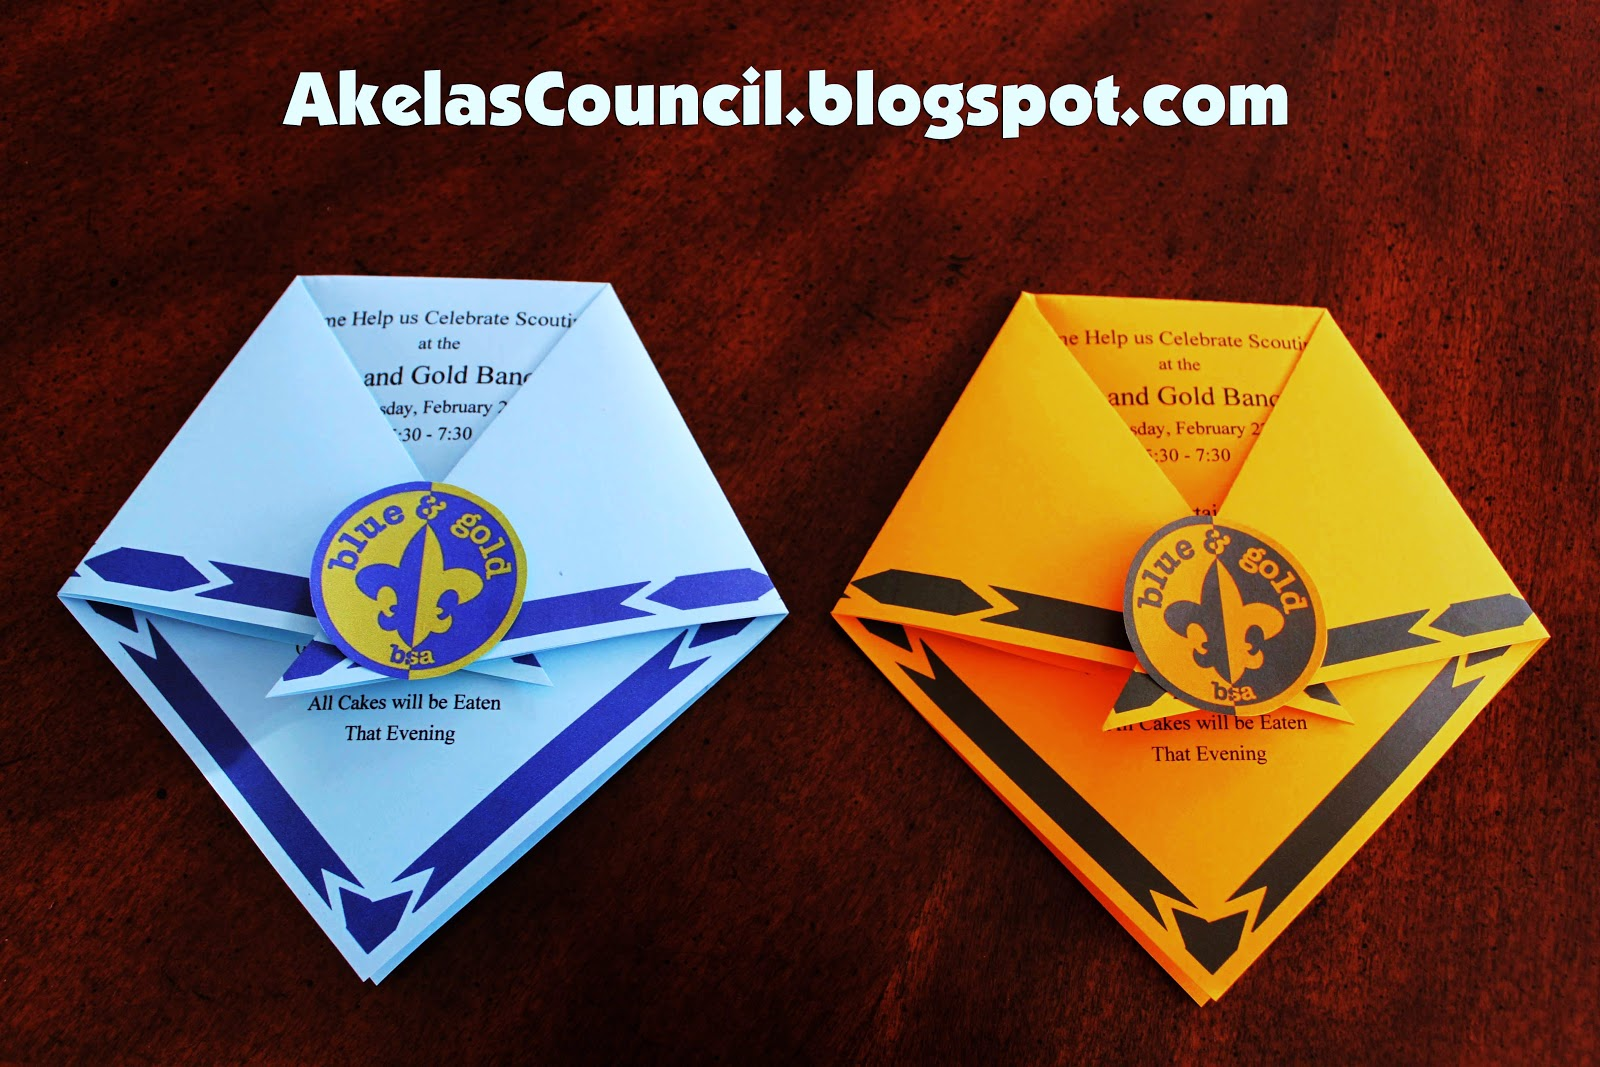 Awesome Cub Scout Christmas Party Ideas Part - 12: Cub Scout Blue U0026 Gold Banquet Dinner Invitation Printable Ideas That Look  Like Cub Scout Neckerchiefs